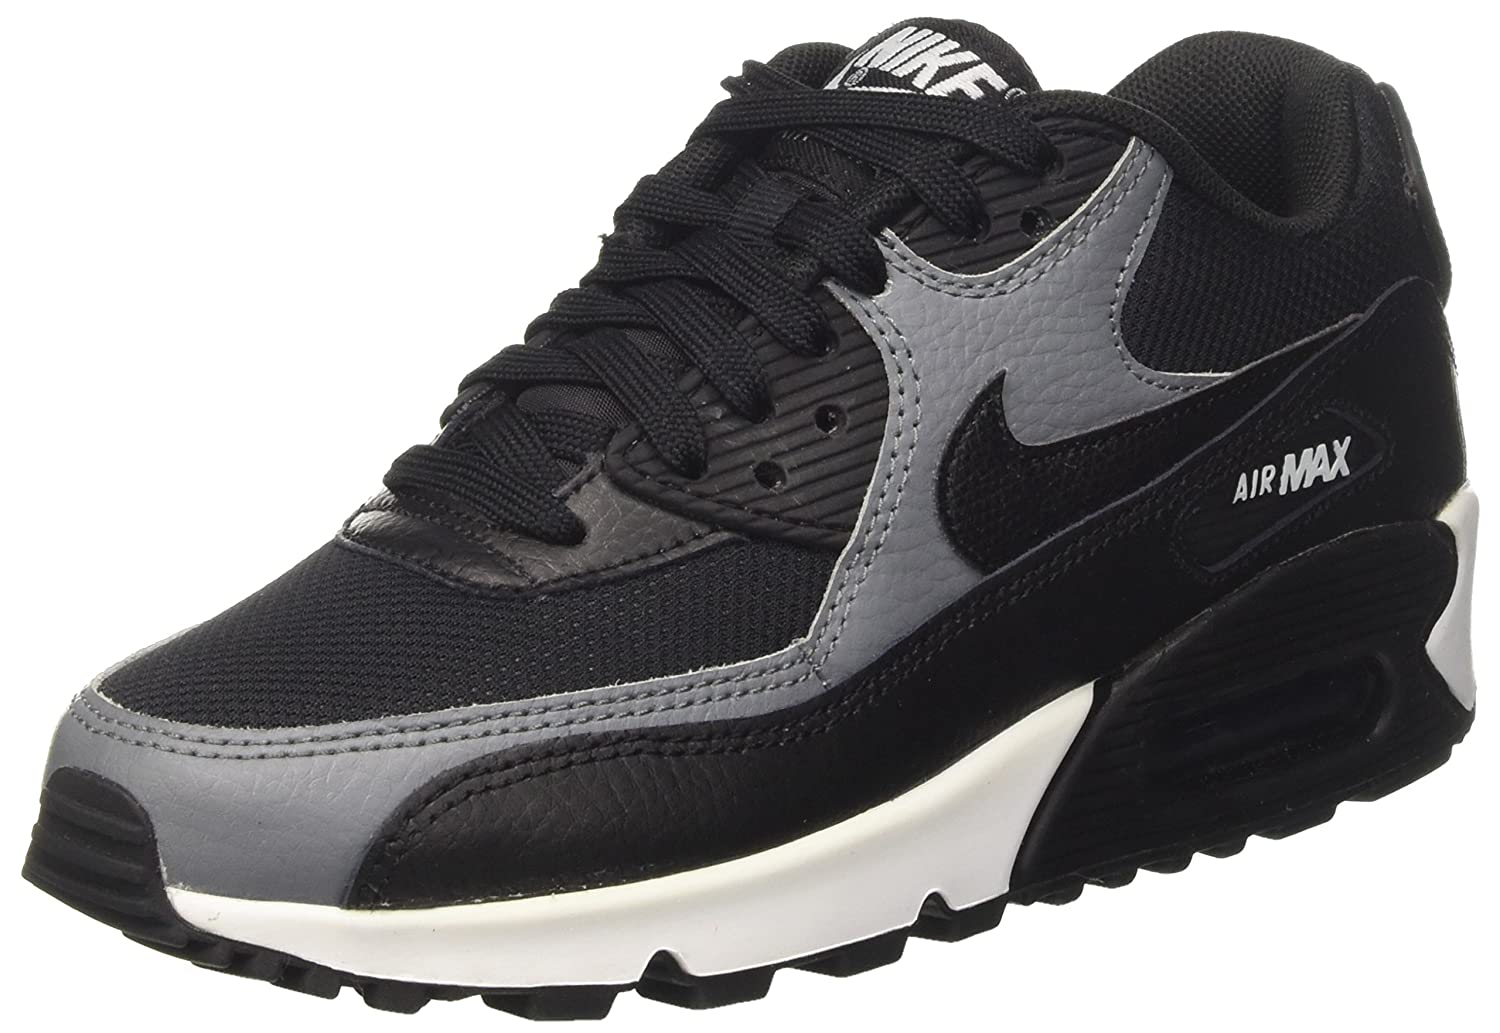 Nike 325213, Zapatillas Mujer 38 EU|Negro (Black/Black/Cool Grey/Black/White)